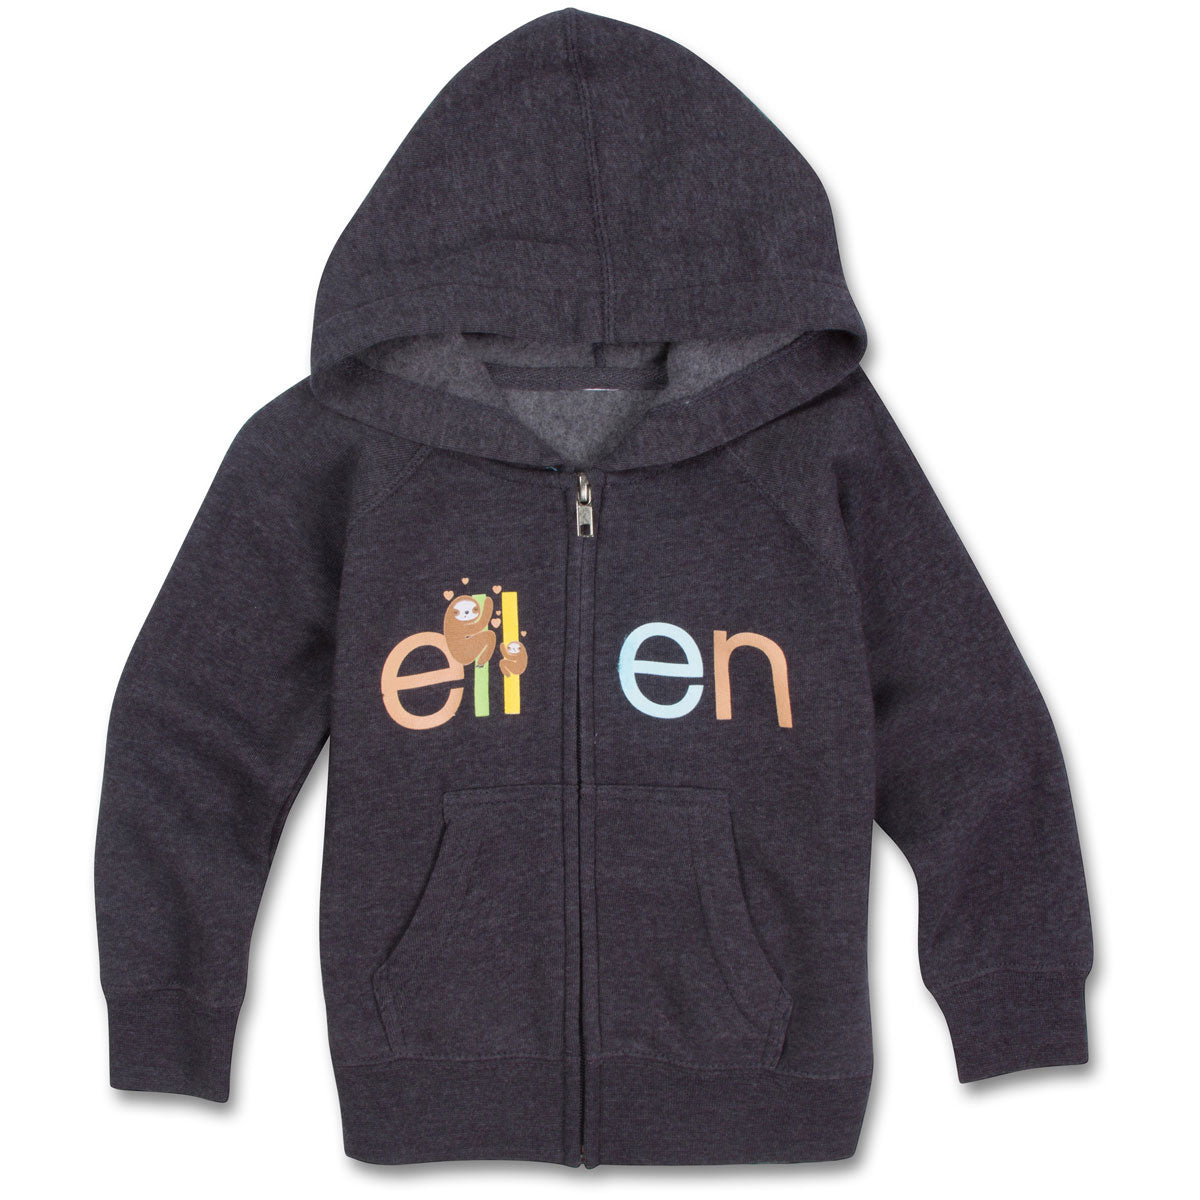 The ellen DeGeneres Show Shop-Sloth Toddler Zip Up- Navy-Front